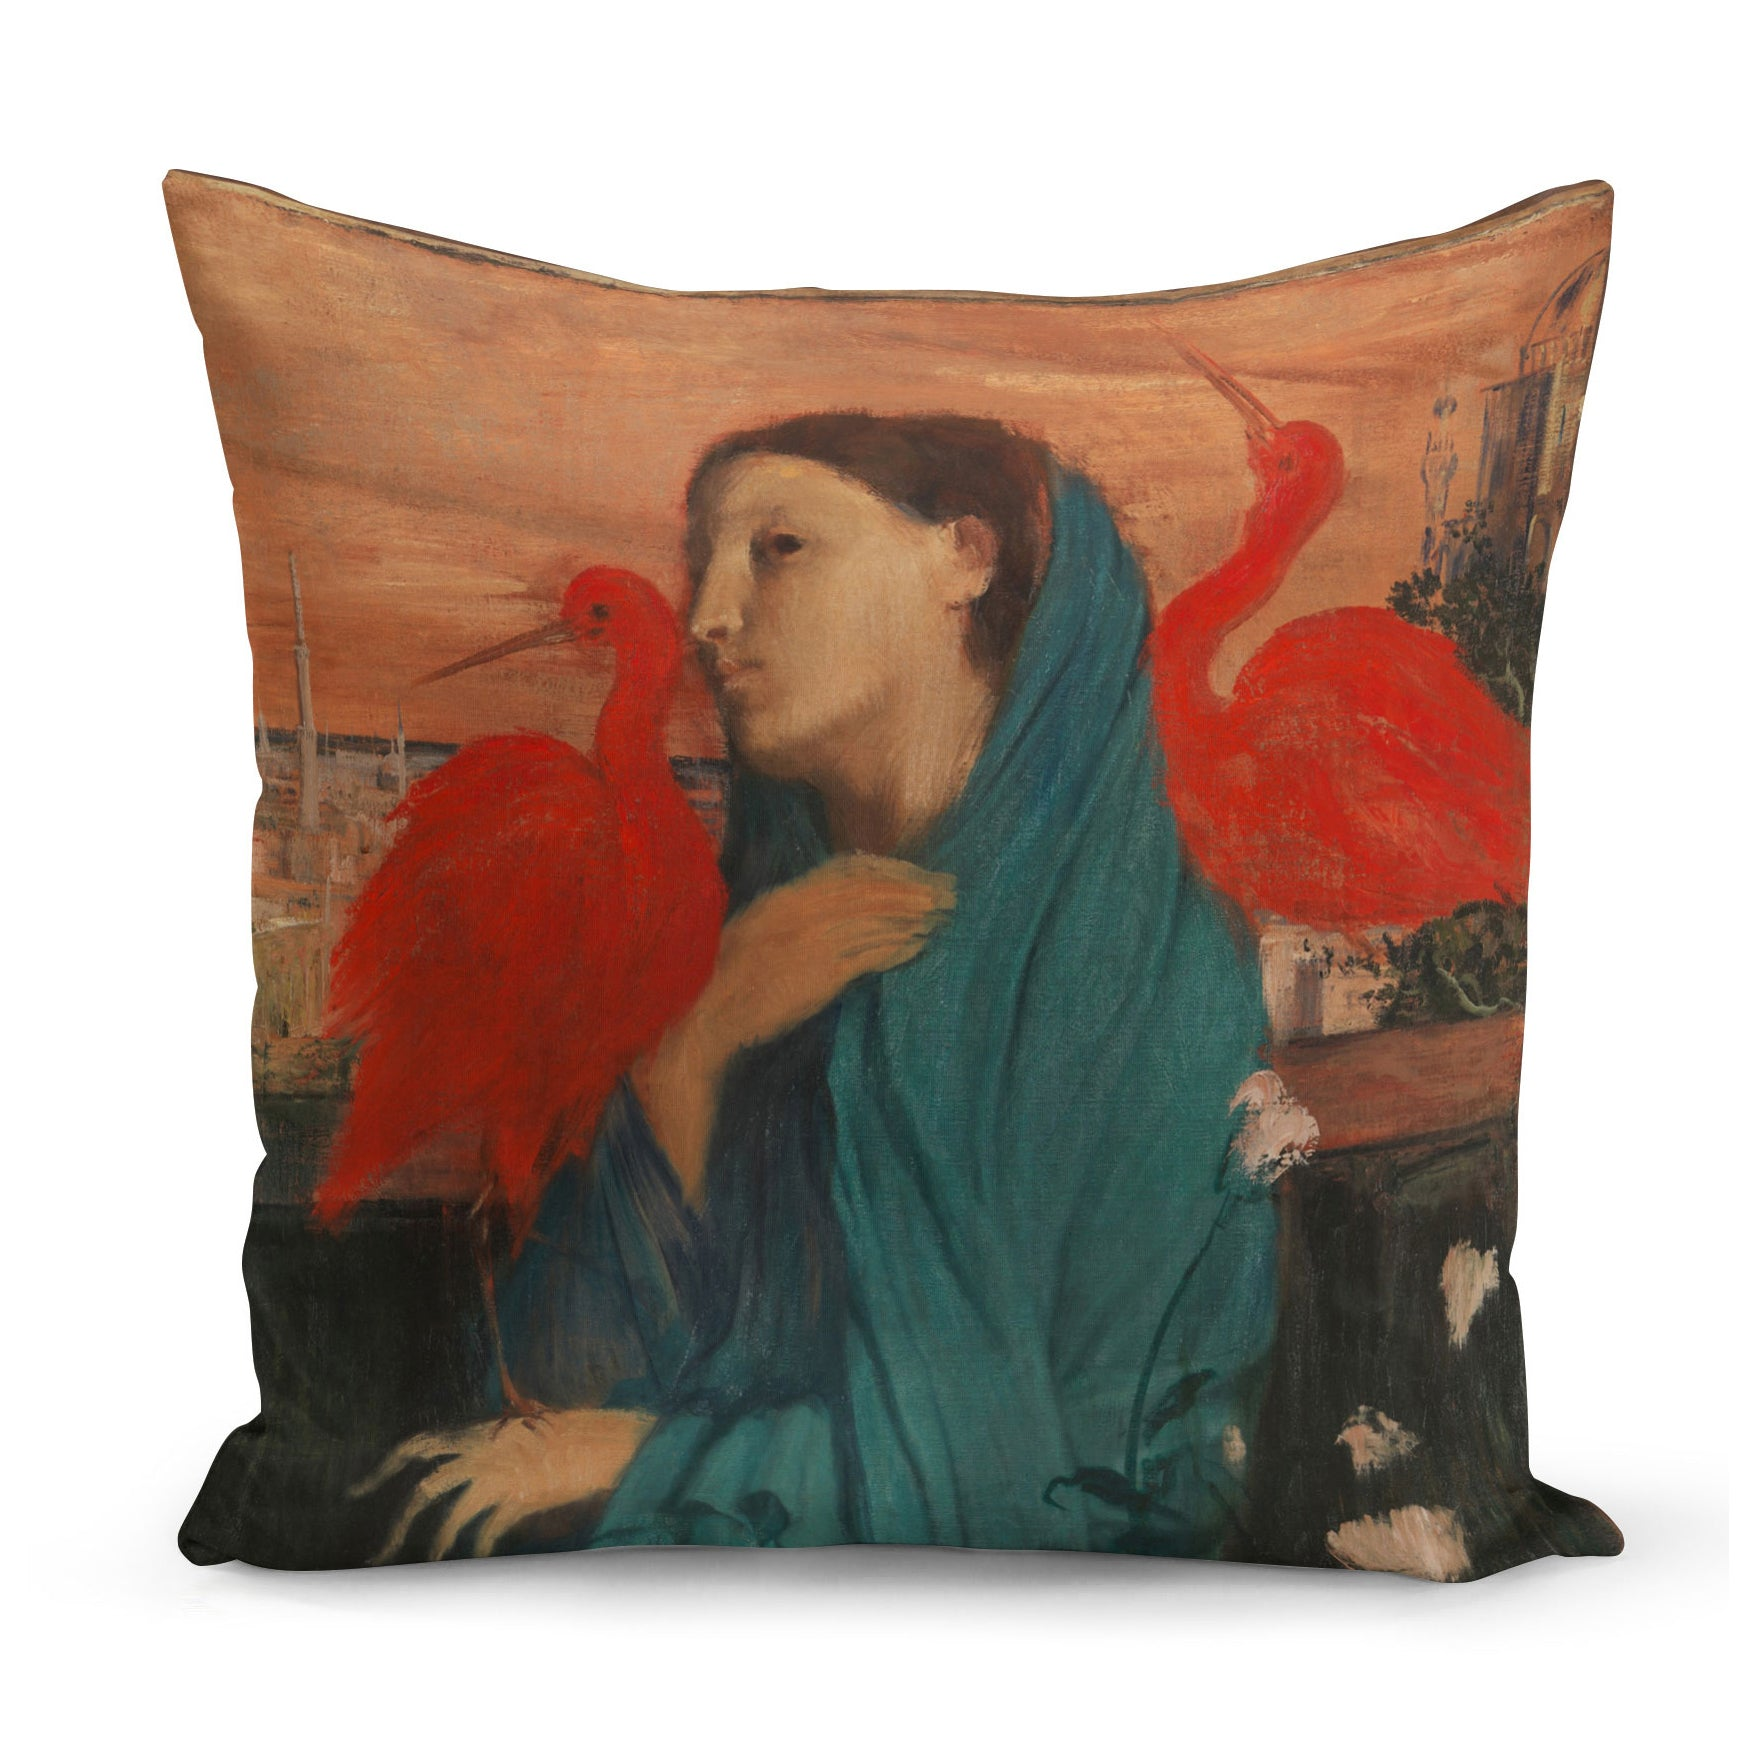 cushion decorated with art by Edgar Degas of young woman with two red ibises on her shoulders